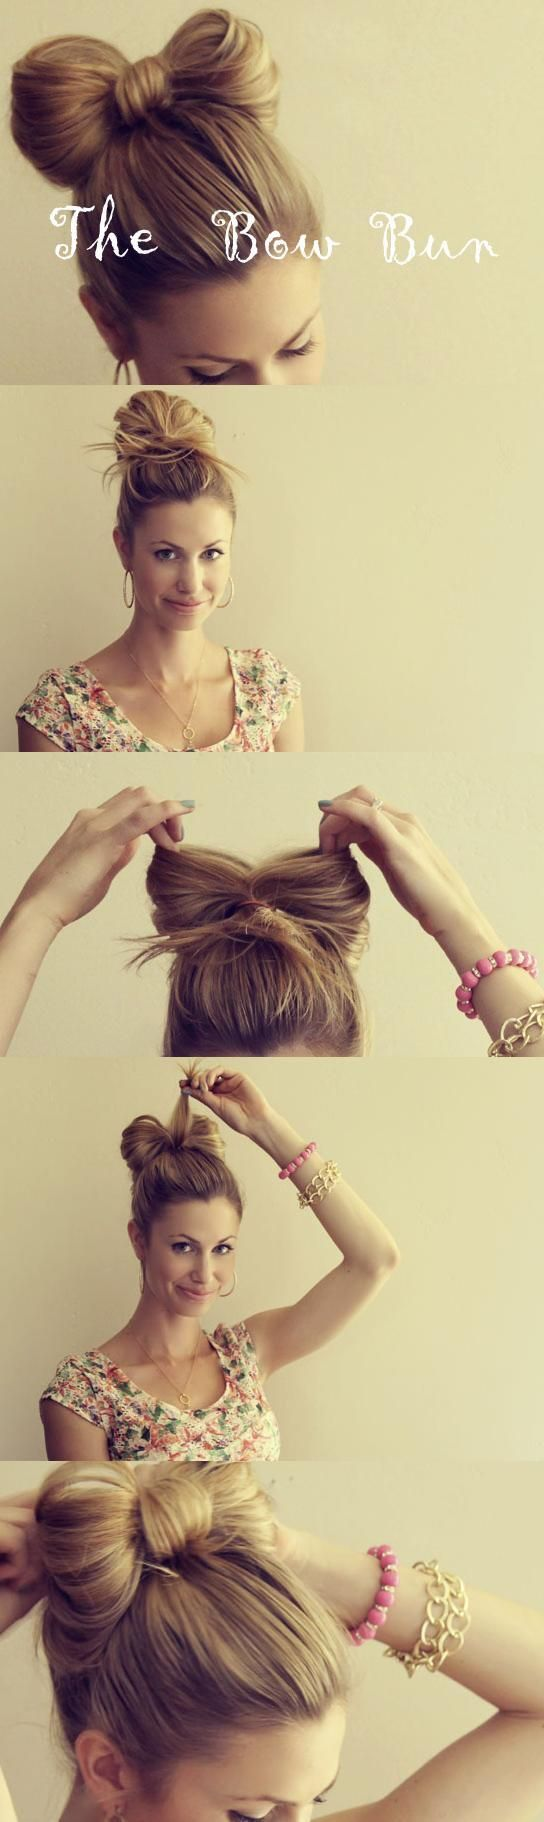 DIY hair bow bun tutorial ♥ Gorgeous Wedding Hair